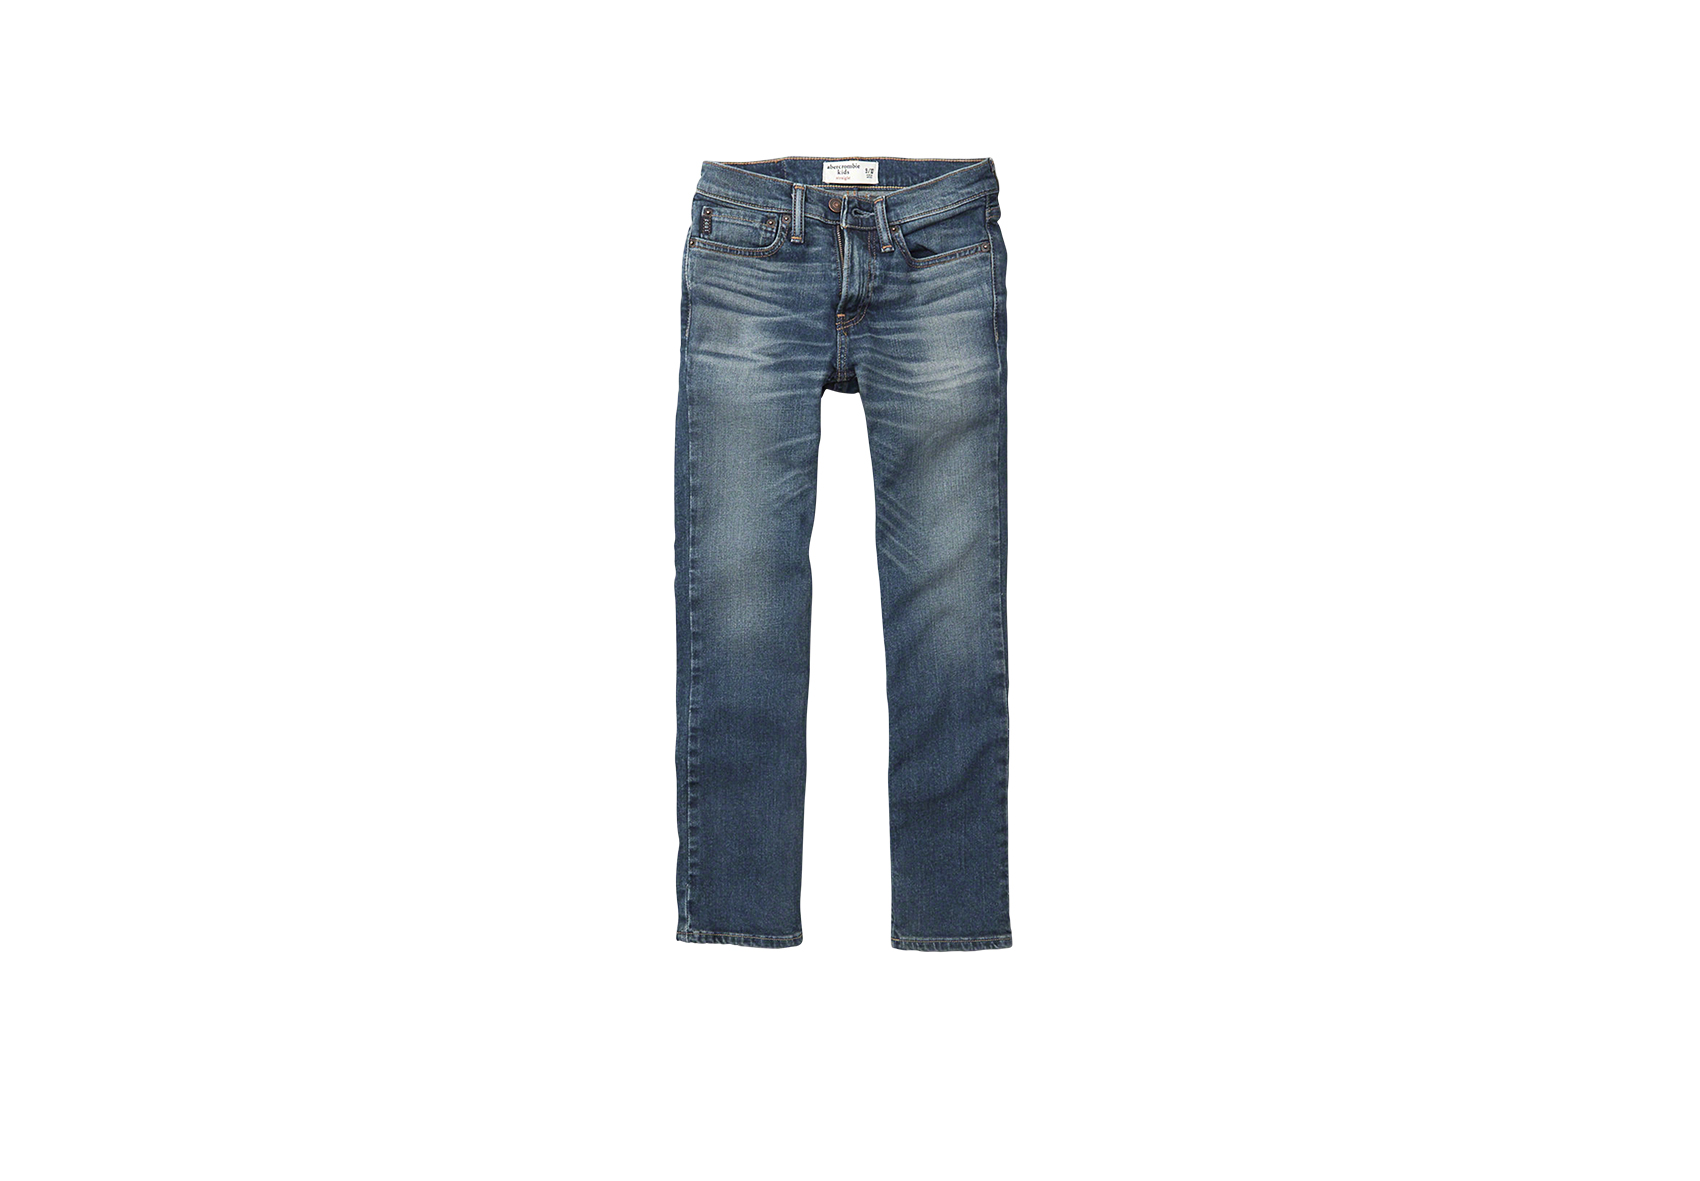 A&F Kids Boys' straight jeans